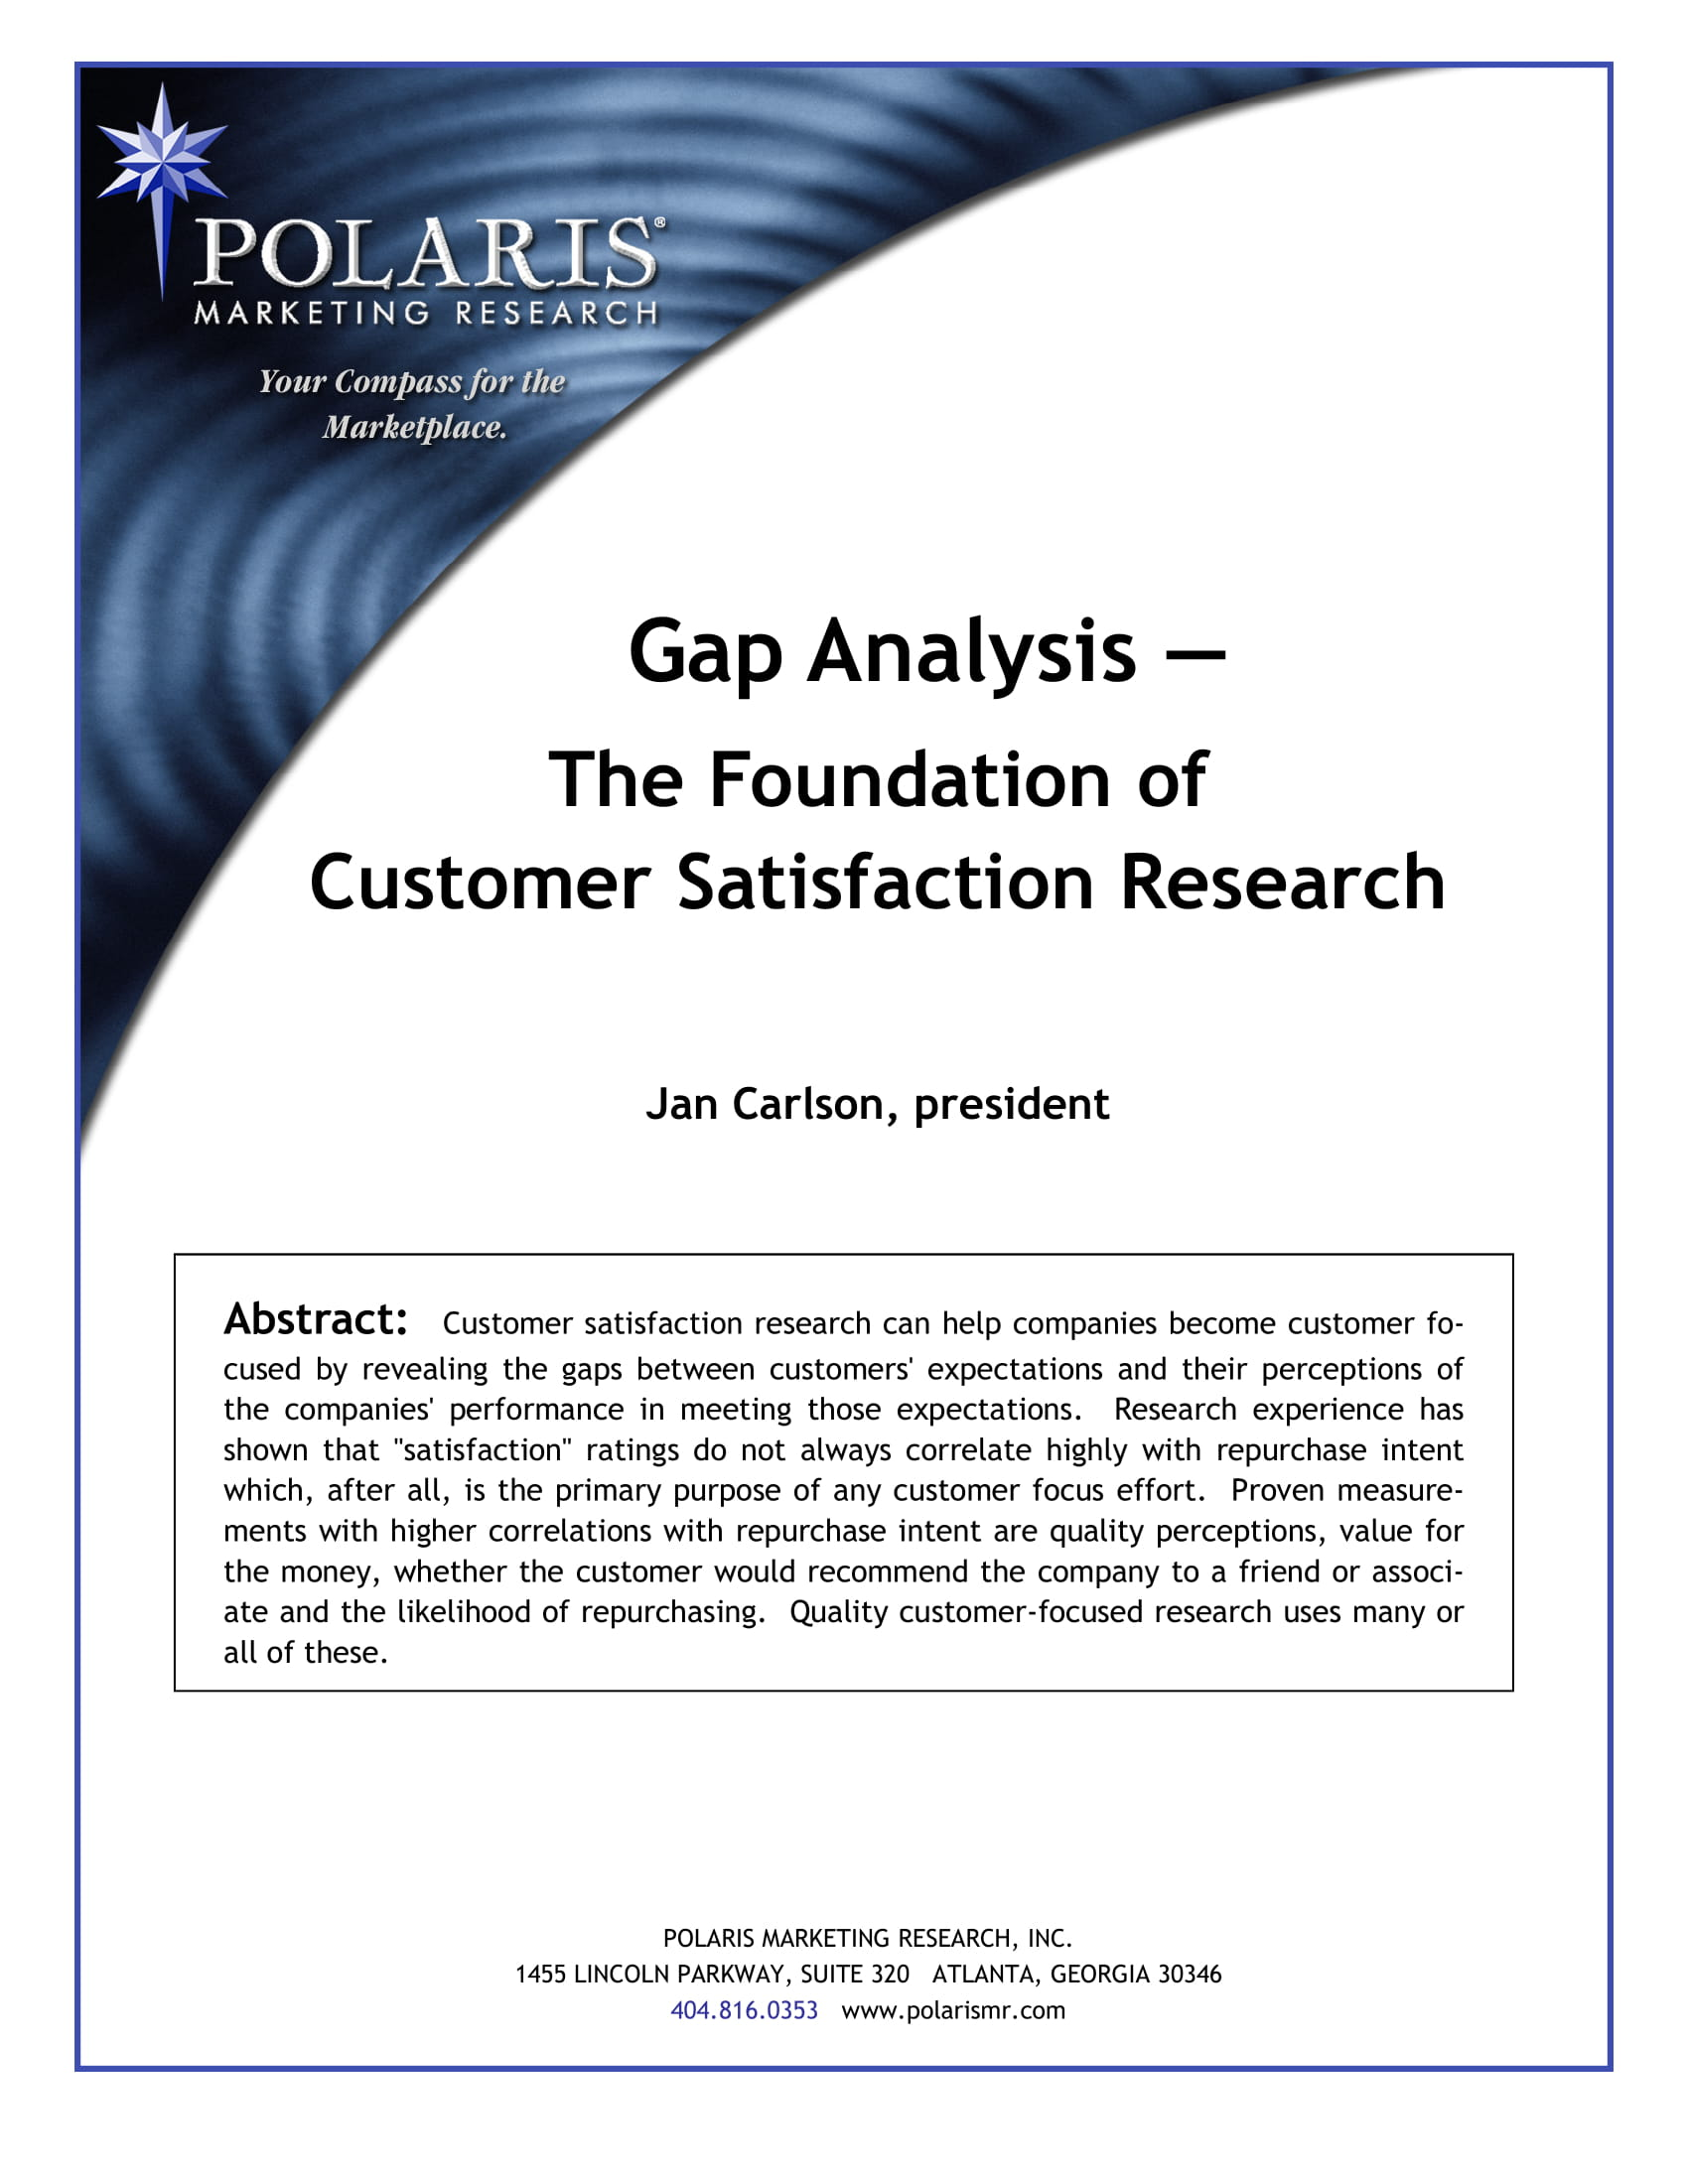 polaris mr gap analysis